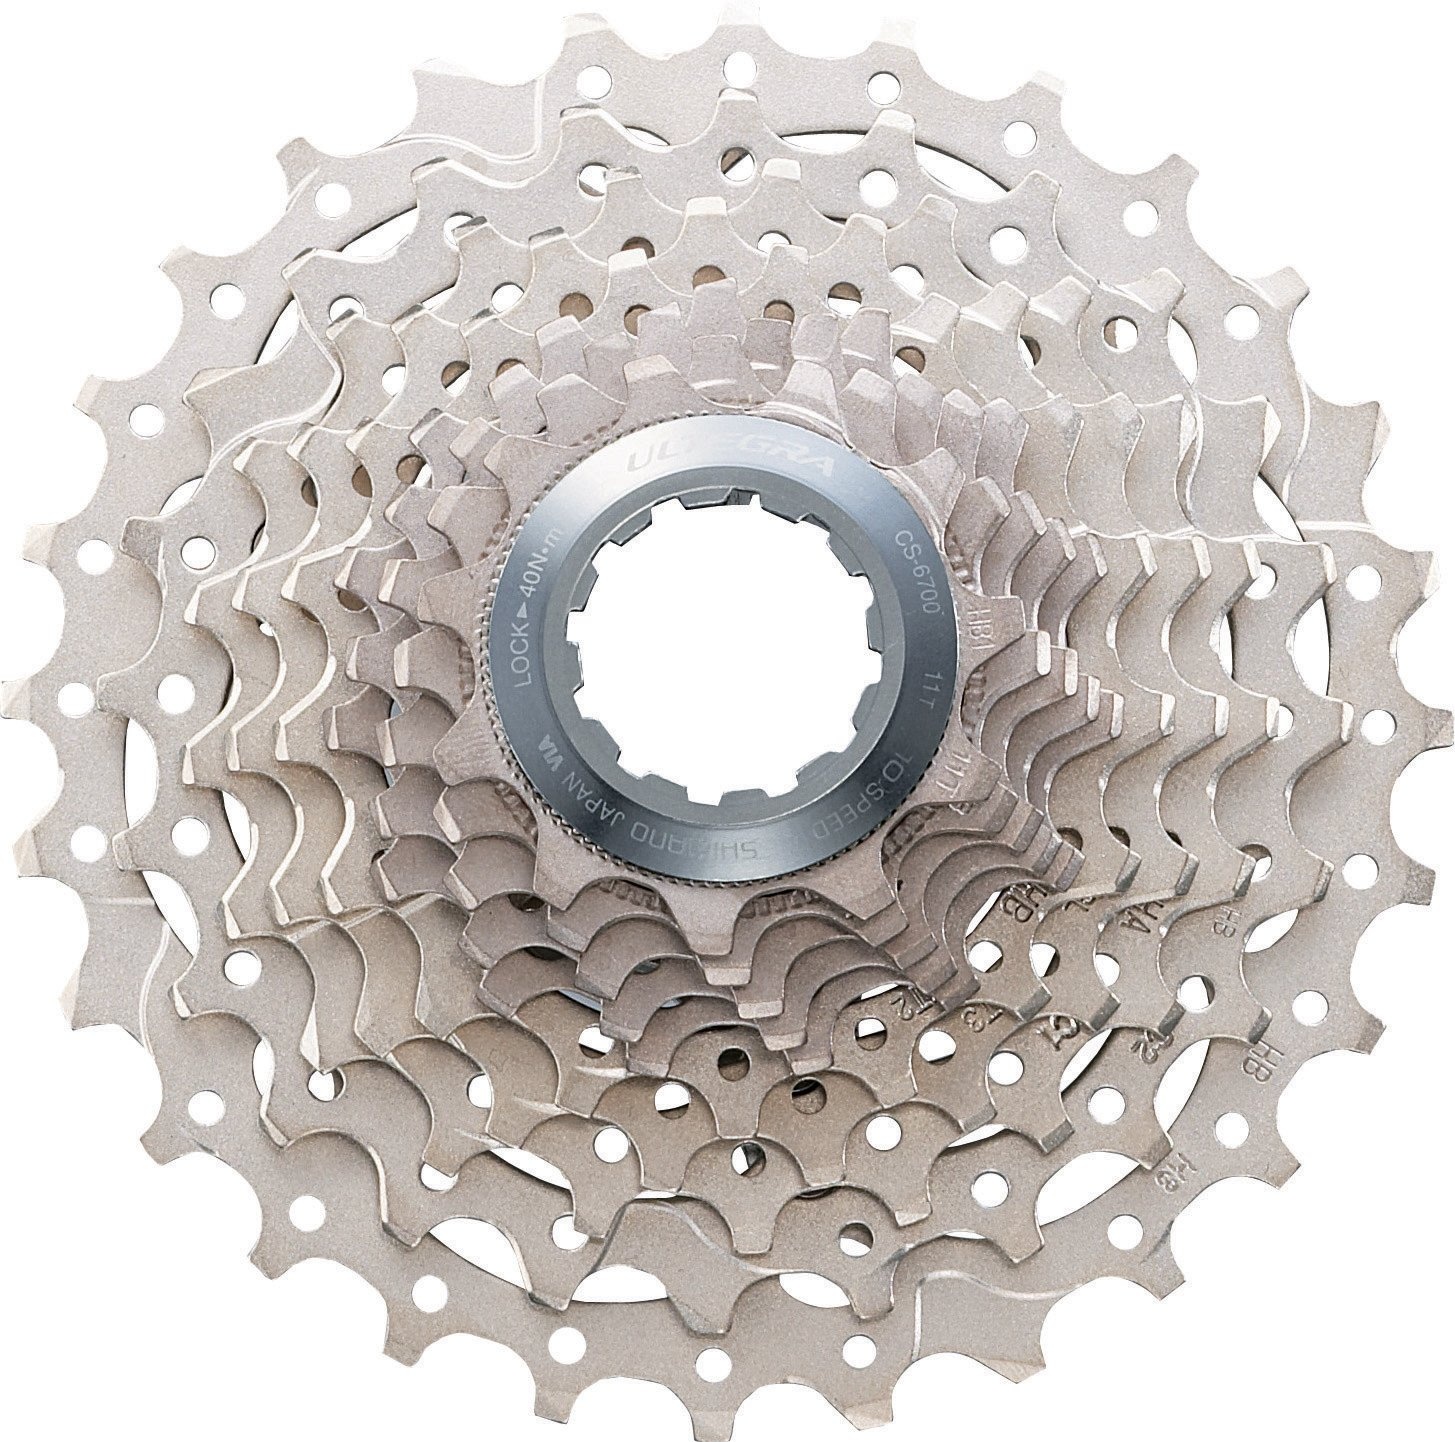 SHIMANO CS-6700 Ultegra Bicycle Cassette (10-Speed, 11/28T) by SHIMANO